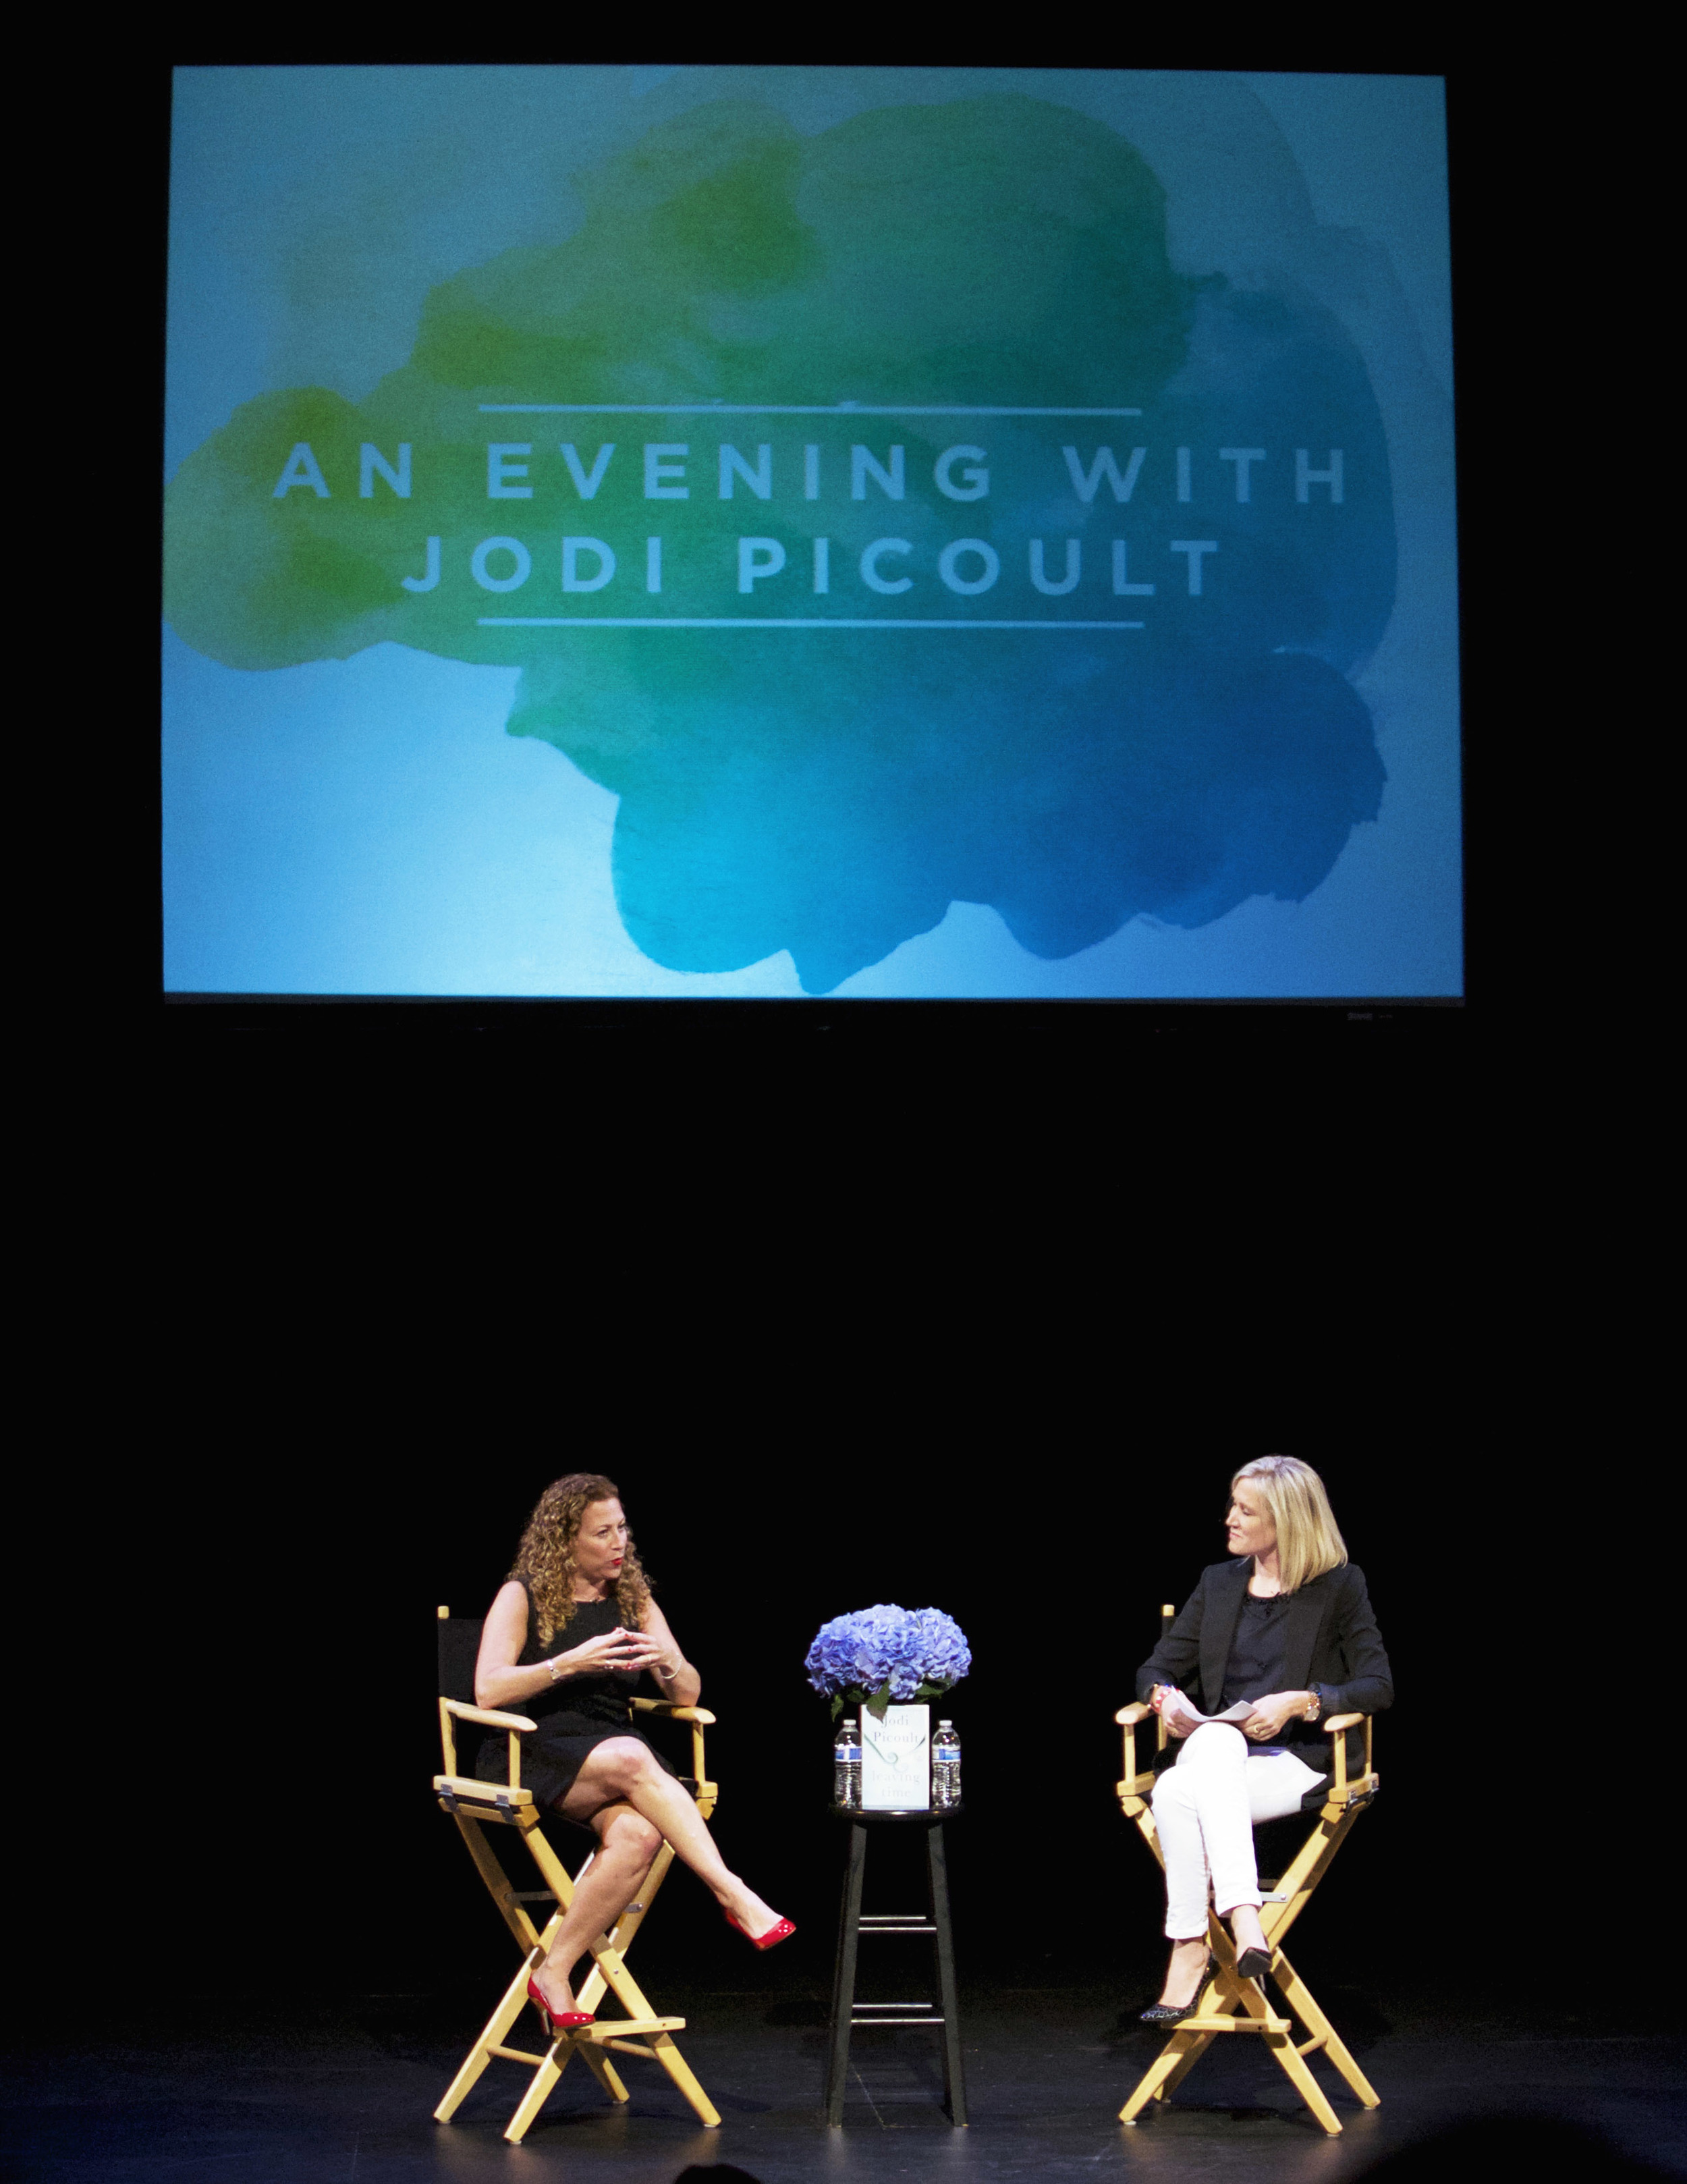 AnEveningWithJodiPicoult17